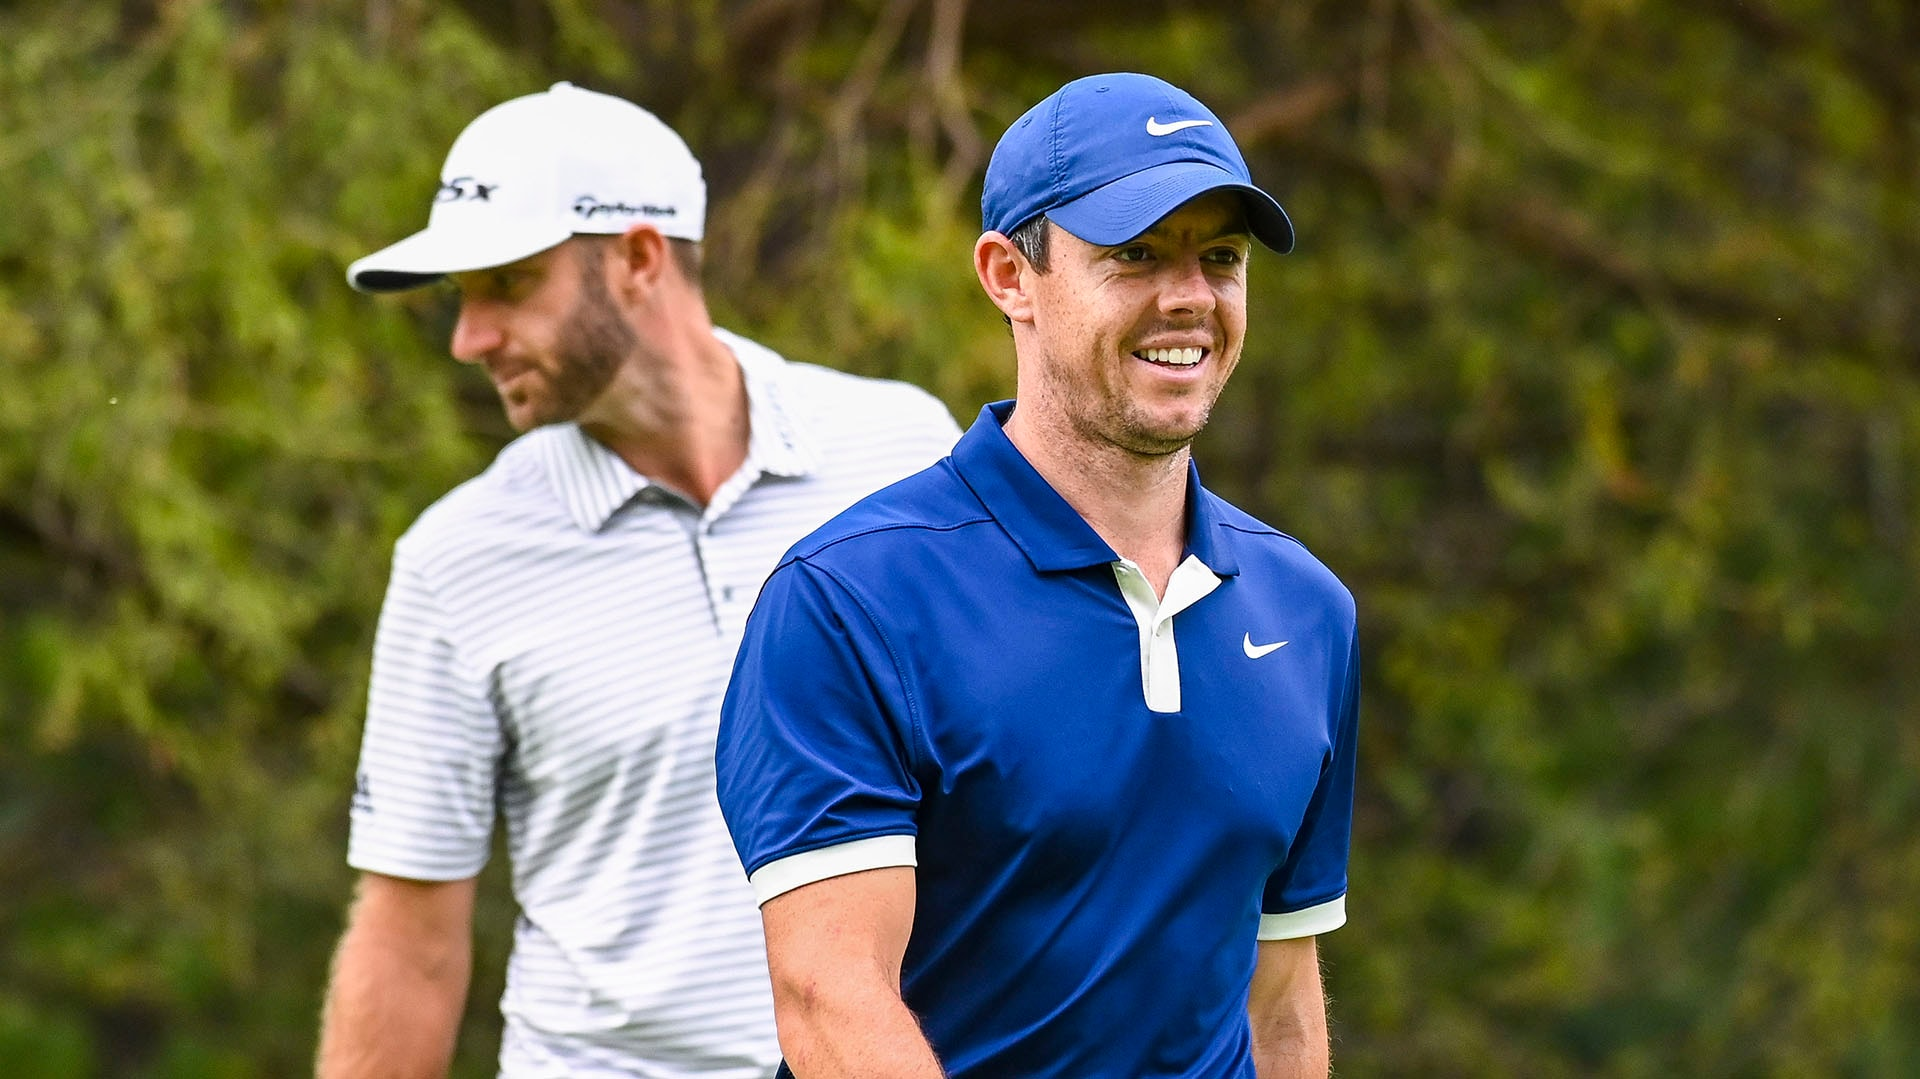 Rory McIlroy favored over Dustin Johnson at WGC-Mexico